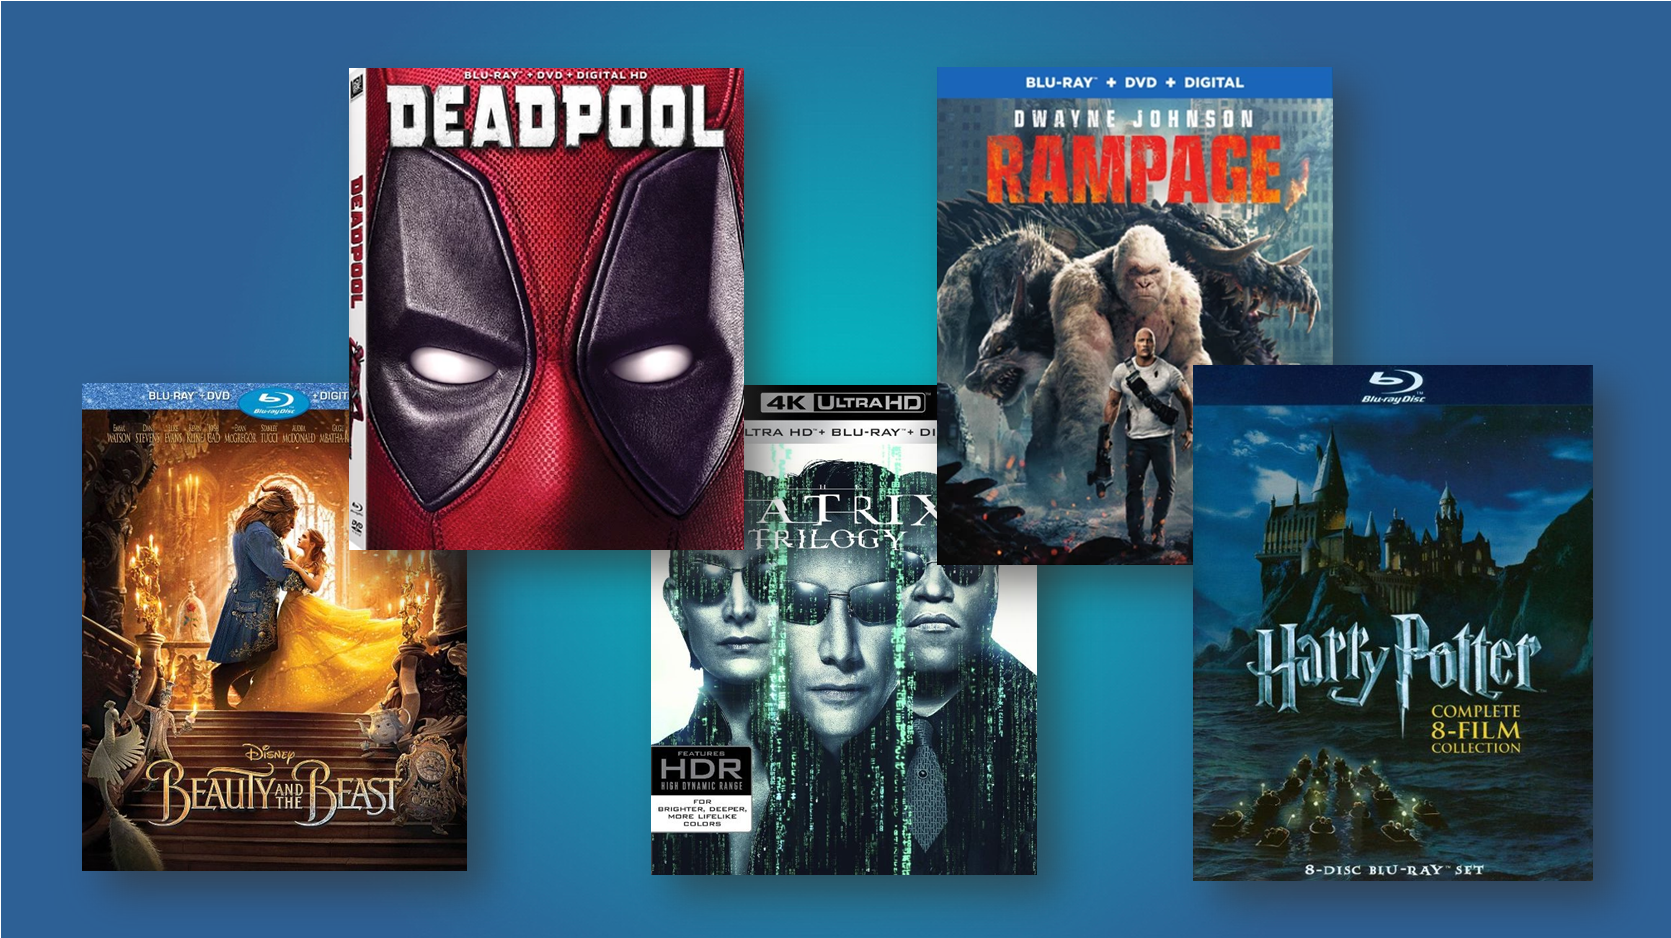 Need stocking-stuffers this Christmas? Check out this list of deals for 4K and Blu-ray movies, shows and box sets from Amazon, Best Buy, Target, ...